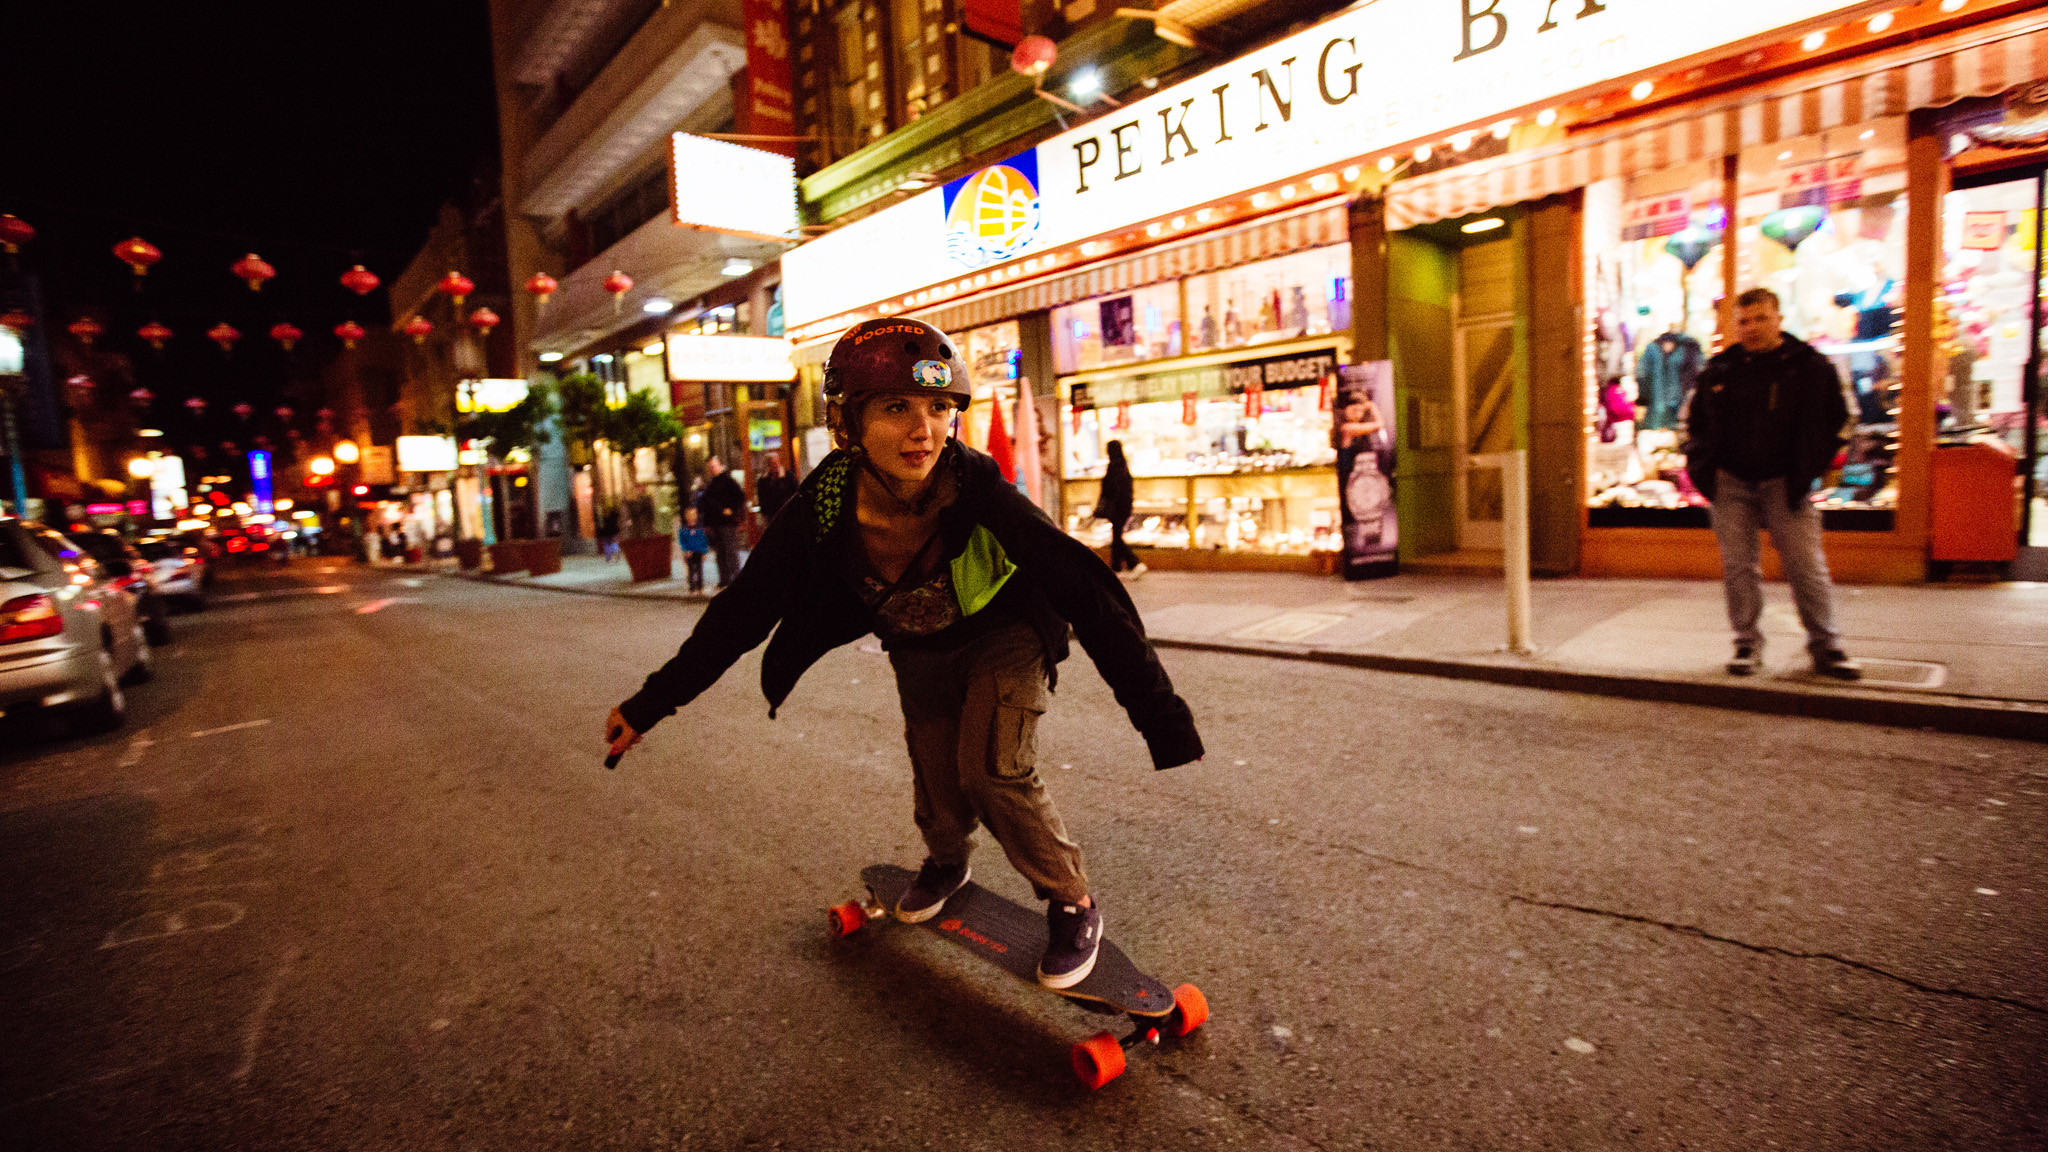 boosted board electric skateboard commute that thrills financial